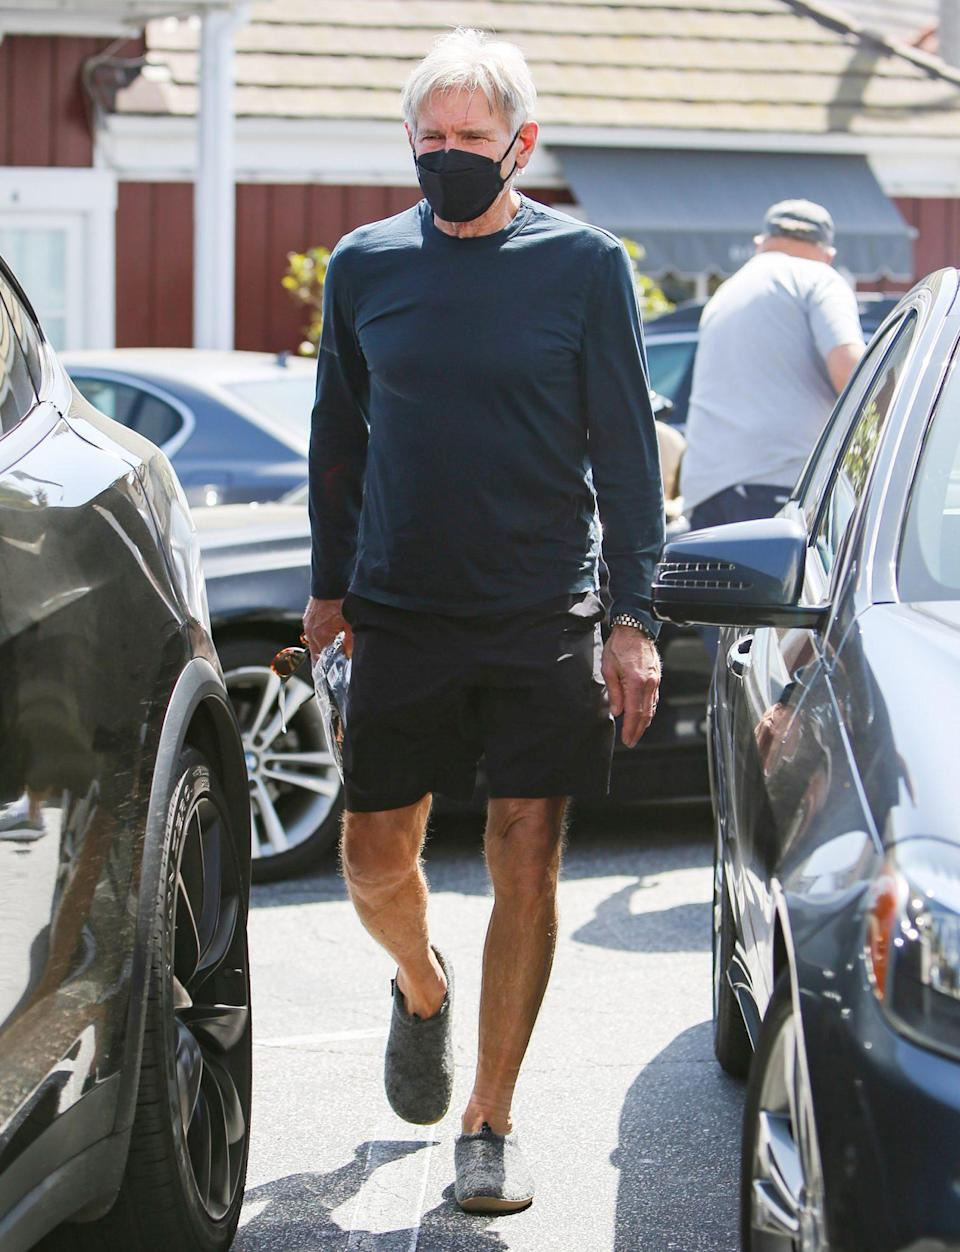 <p>Harrison Ford steps out in a black mask, shorts and sneakers on Tuesday in L.A.</p>